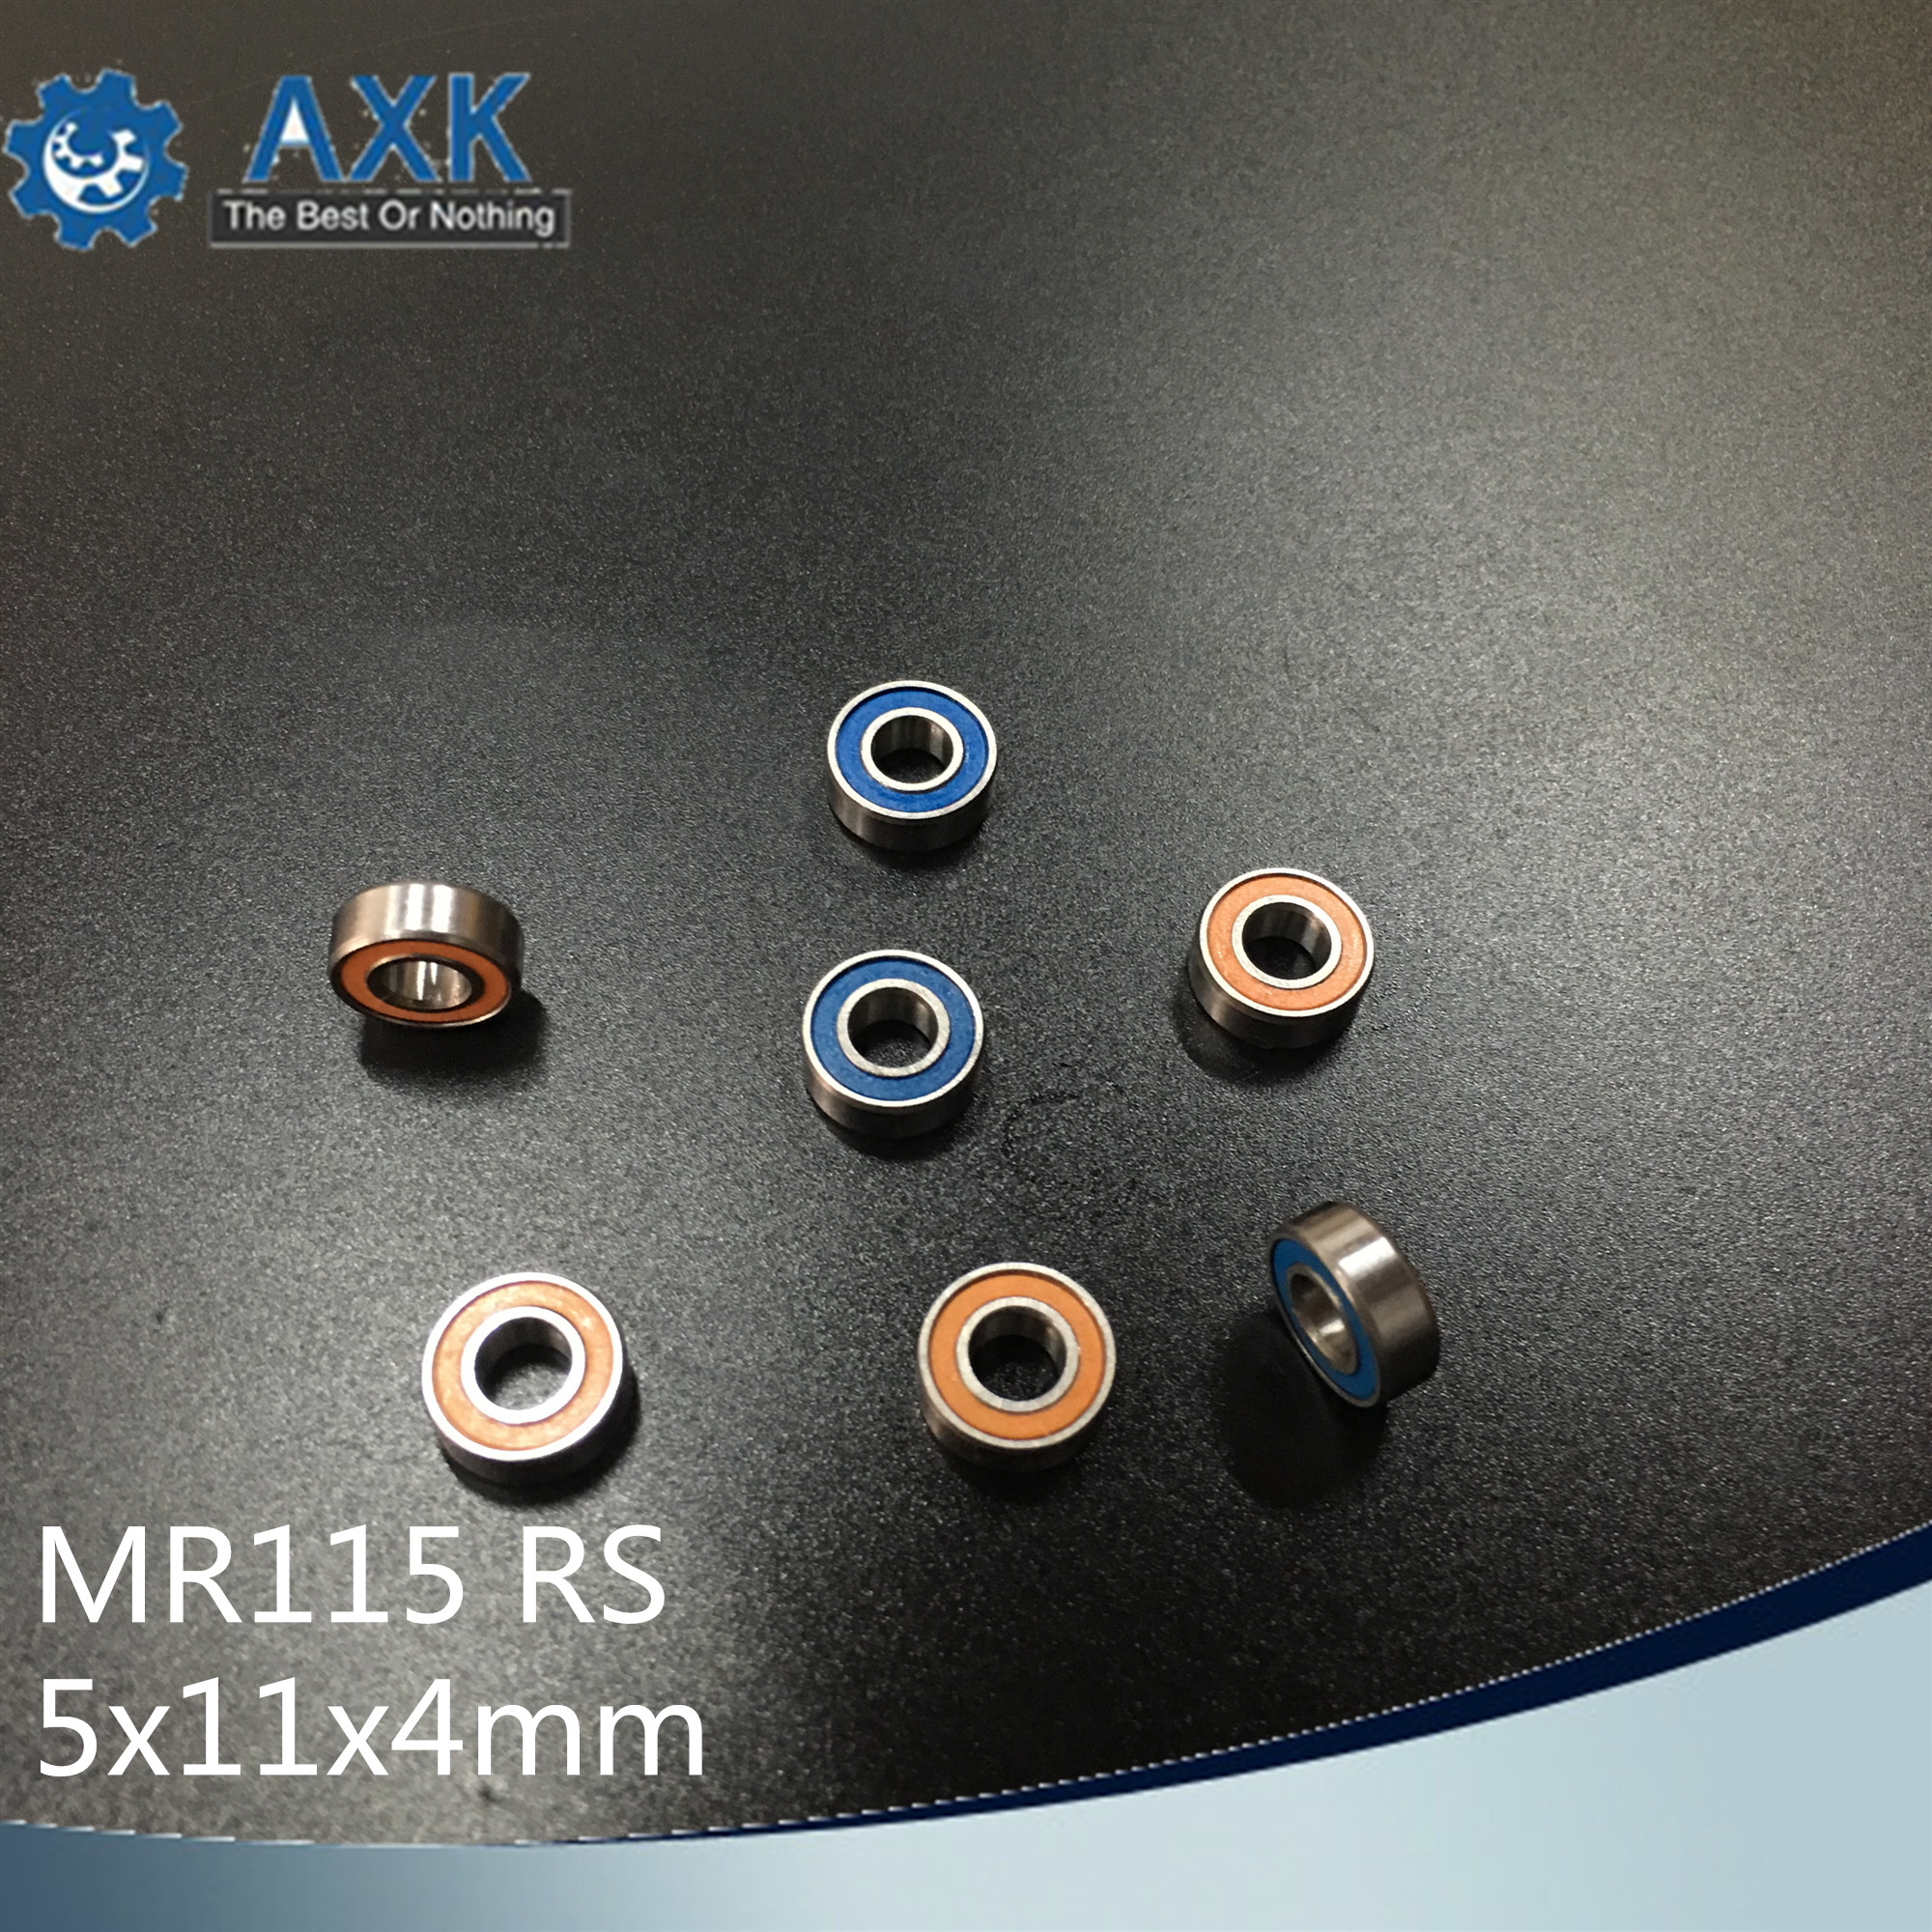 MR115RS Bearing 10PCS 5x11x4 mm ABEC 3 Hobby Electric RC Car Truck MR115 RS 2RS Ball Bearings MR115 2RS Orange blue Sealed c in Shafts from Home Improvement